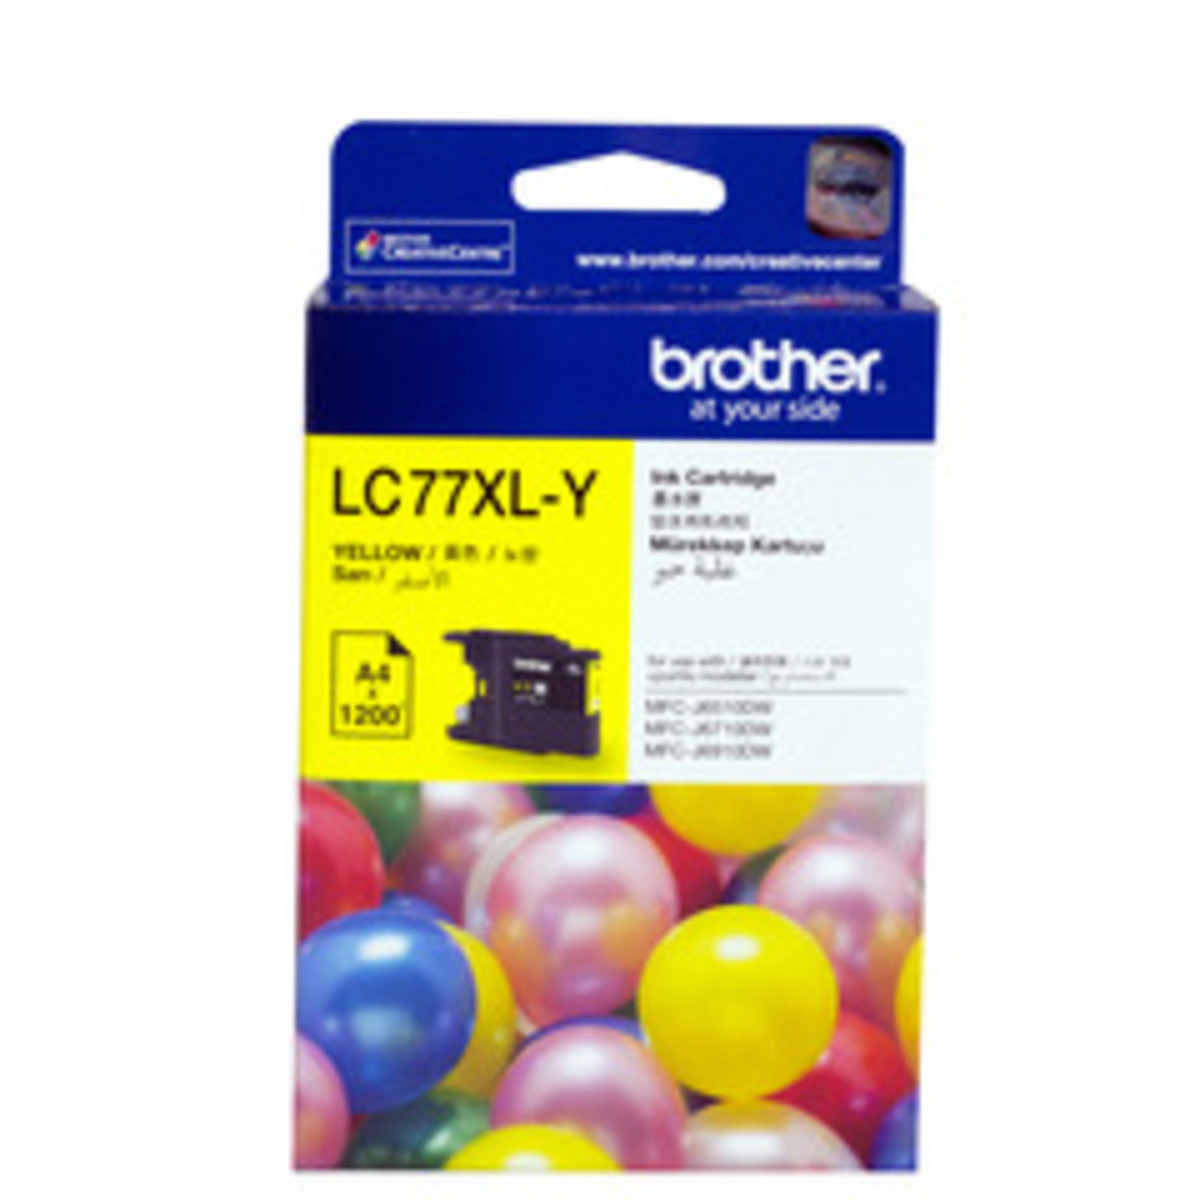 Brother LC-77XL Yellow Ink Cartridge - High Yield